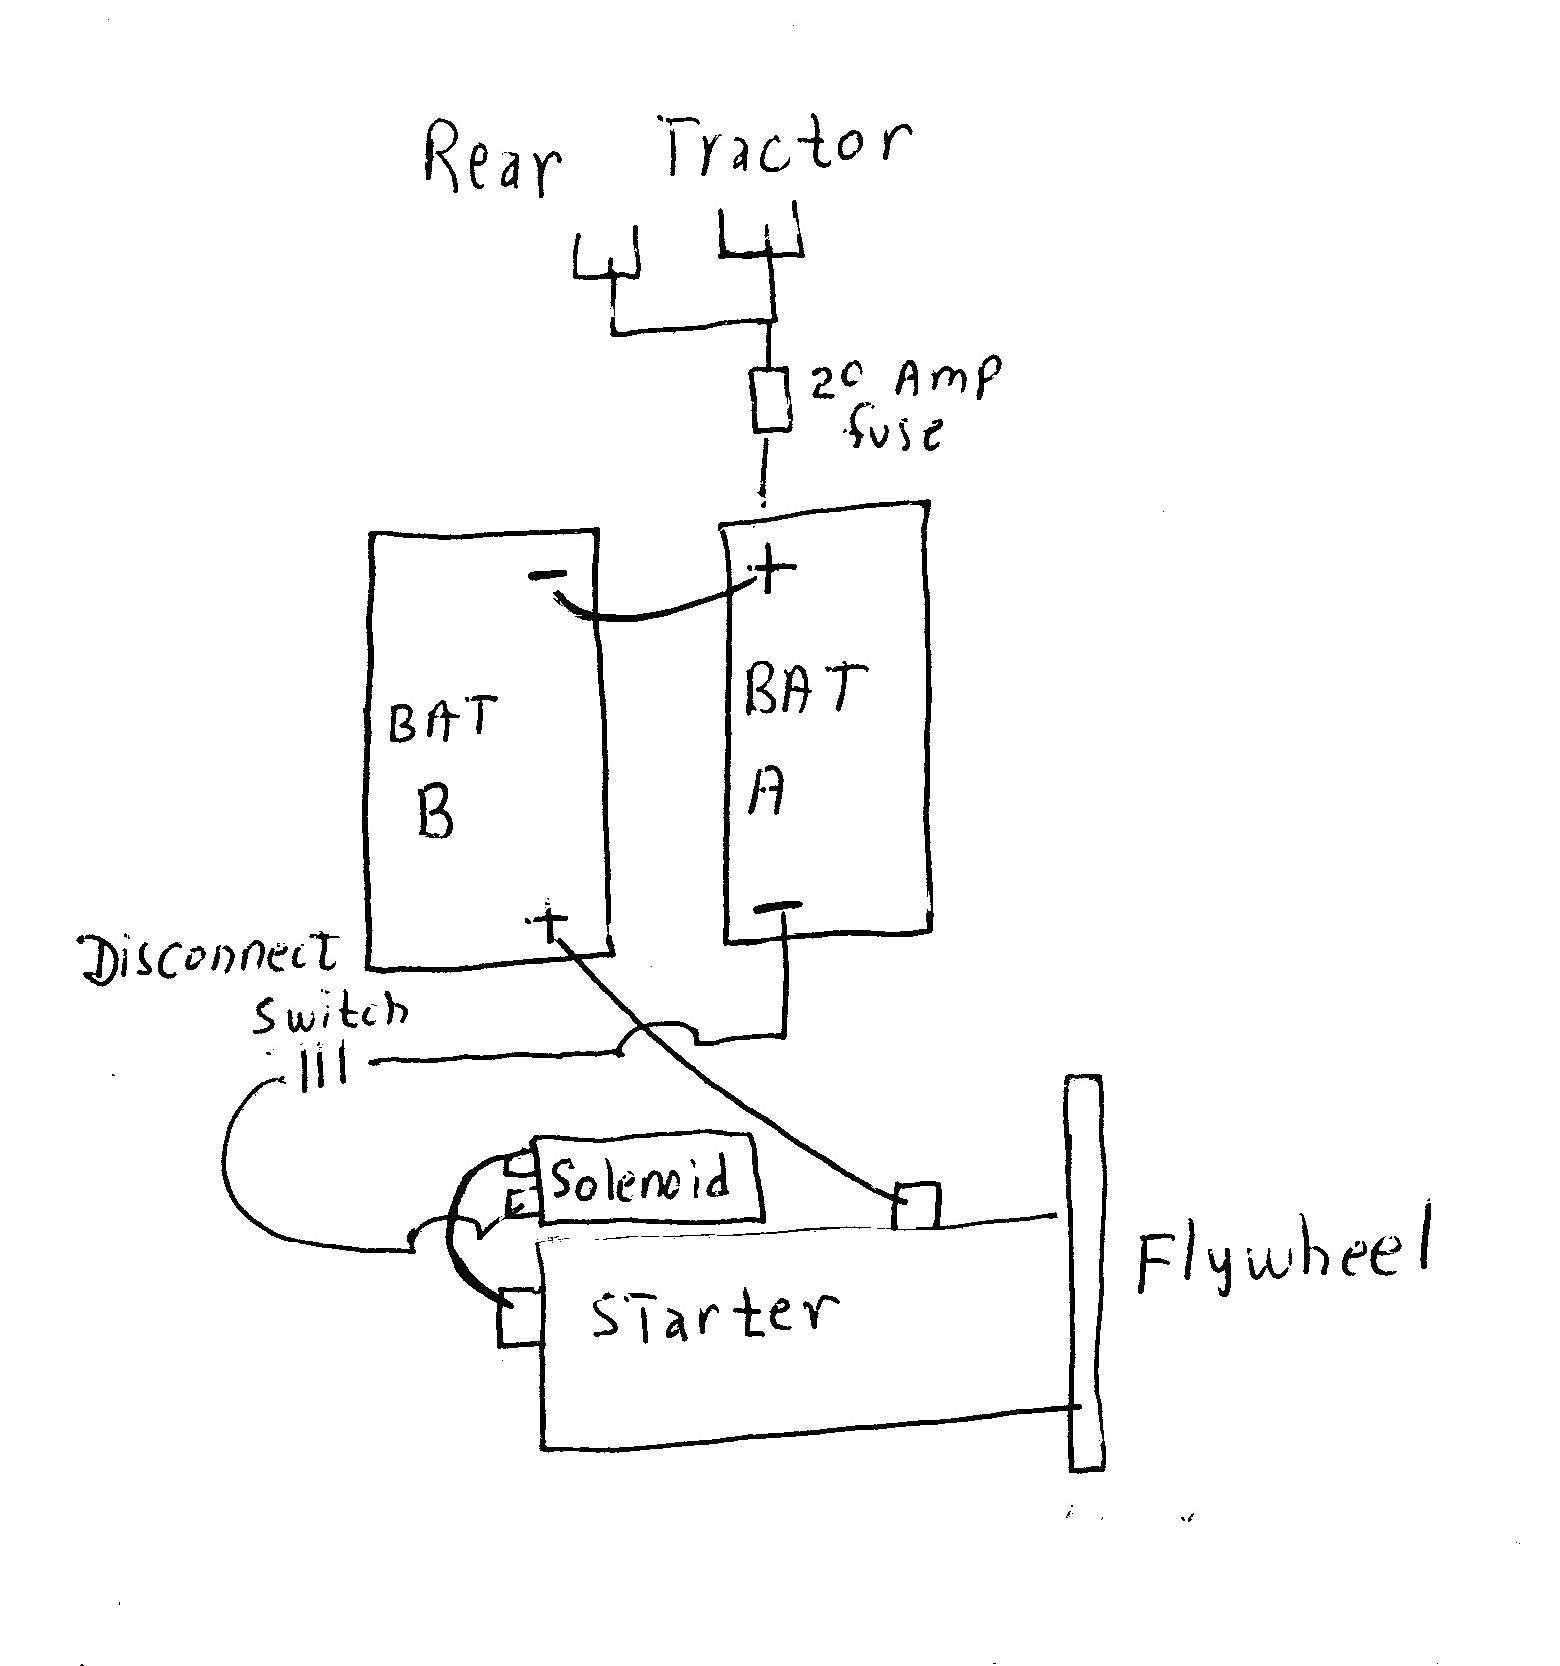 24 Volt Starter Solenoid Wiring Diagram Find To 12 Relay Magnificent Adornment Best Images Rh Oursweetbakeshop Info Parallel